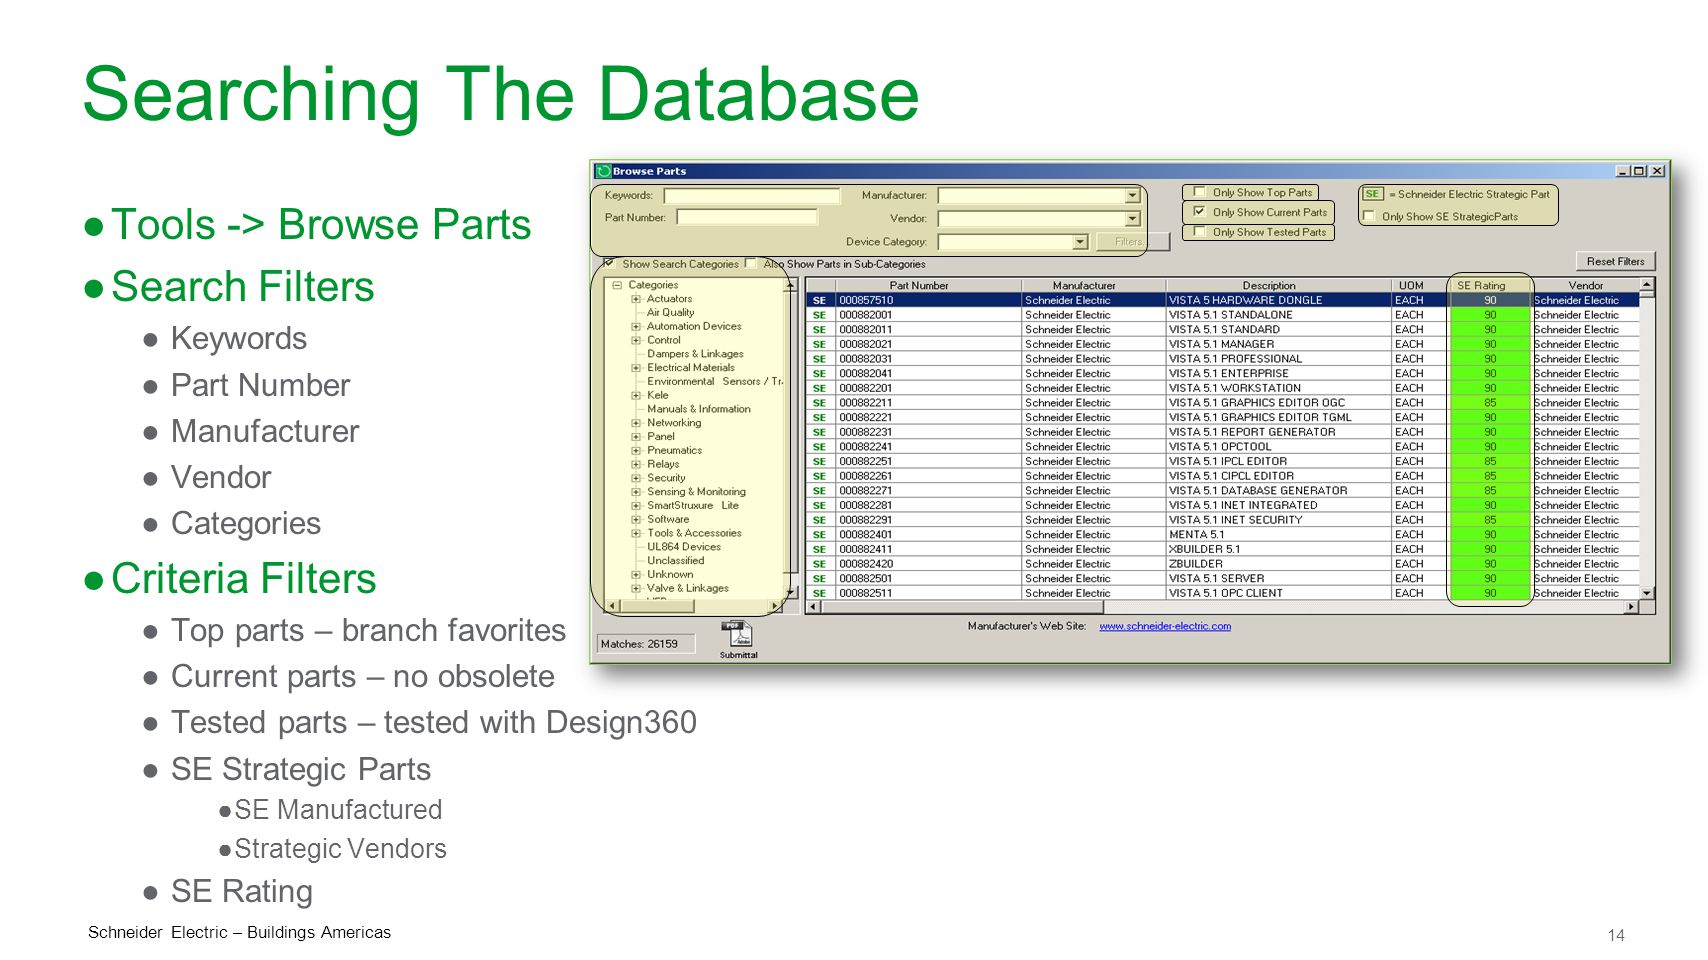 14 Schneider Electric – Buildings Americas Searching The Database ●Tools -> Browse Parts ●Search Filters ●Keywords ●Part Number ●Manufacturer ●Vendor ●Categories ●Criteria Filters ●Top parts – branch favorites ●Current parts – no obsolete ●Tested parts – tested with Design360 ●SE Strategic Parts ●SE Manufactured ●Strategic Vendors ●SE Rating